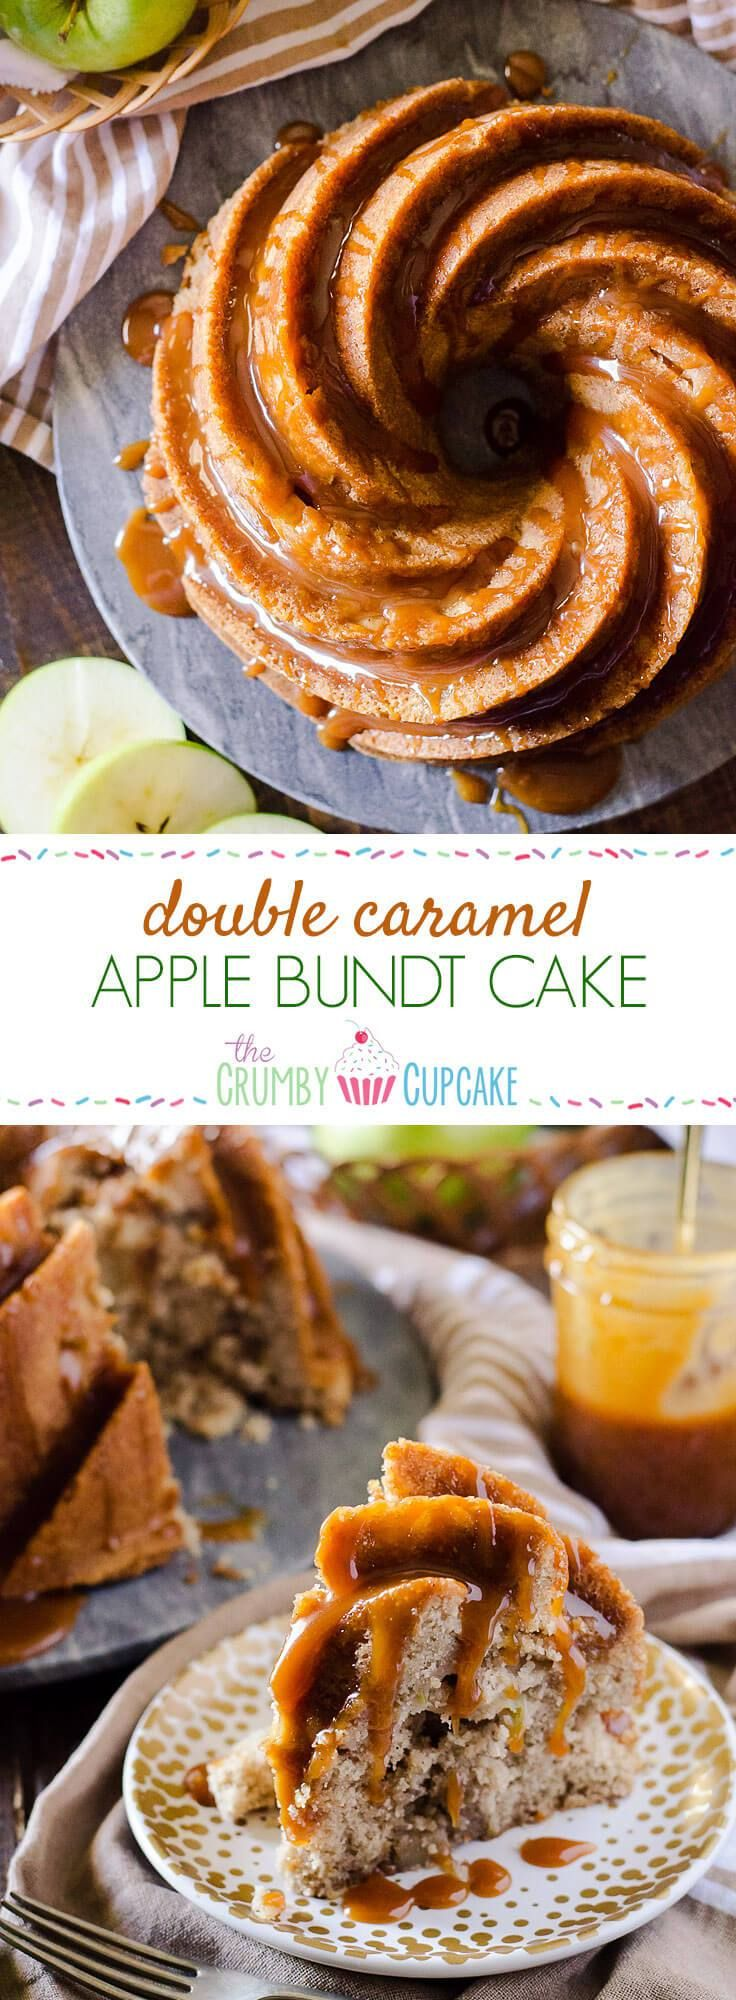 So much caramel! ThisDouble Caramel Apple Bundt Cake isn't just boasting - moist caramel cake, loaded with apples and a little spice, then doused in even more caramel sauce for a deliciously sweet dessert experience!